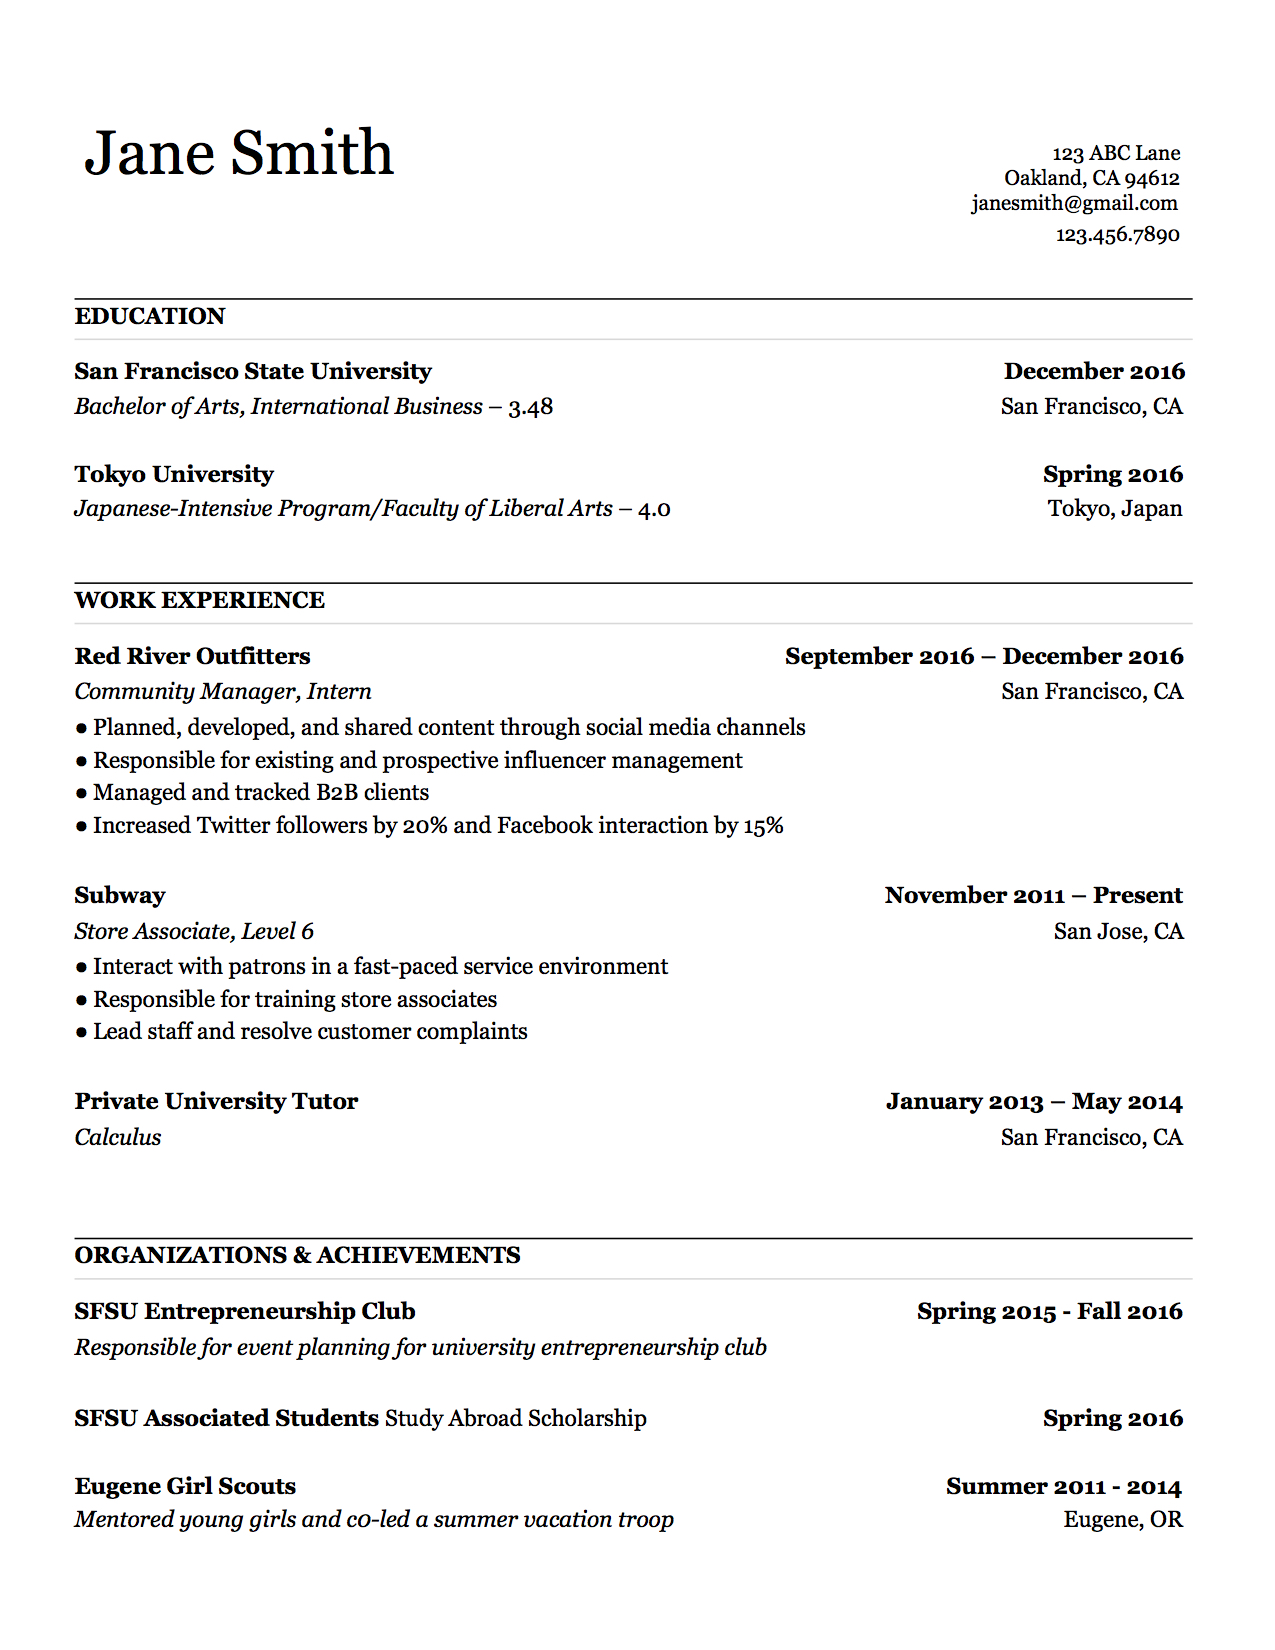 actually free resume templates localwise need template cover letter for manual testing Resume Need Free Resume Template